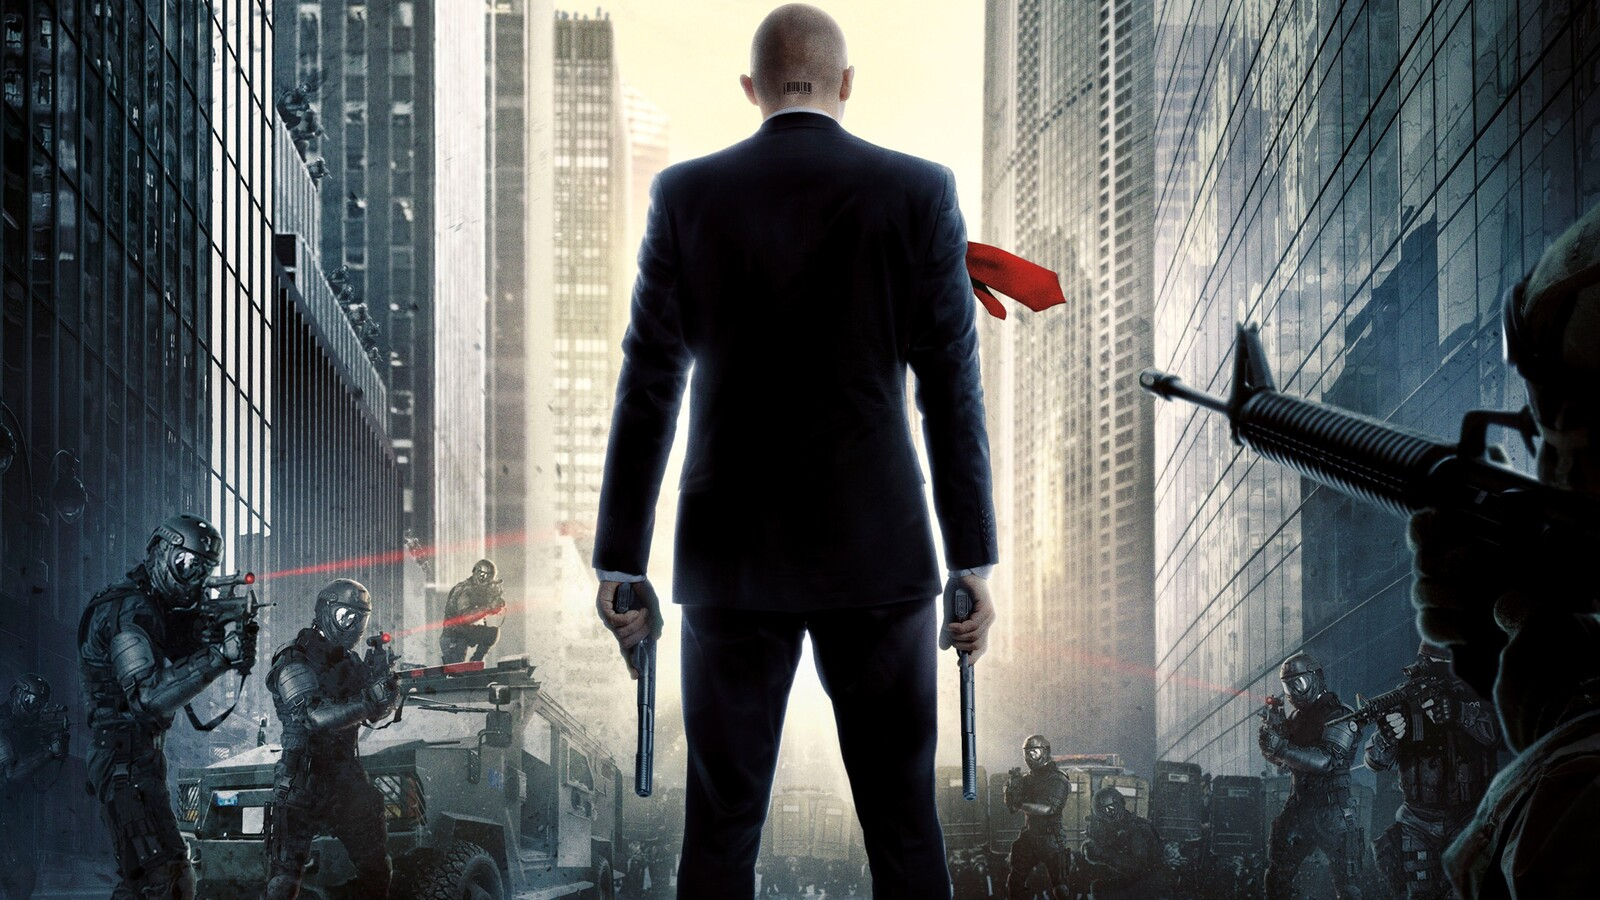 1600x900 hitman agent 47 1600x900 resolution hd 4k wallpapers images backgrounds photos and - Agent 47 wallpaper ...